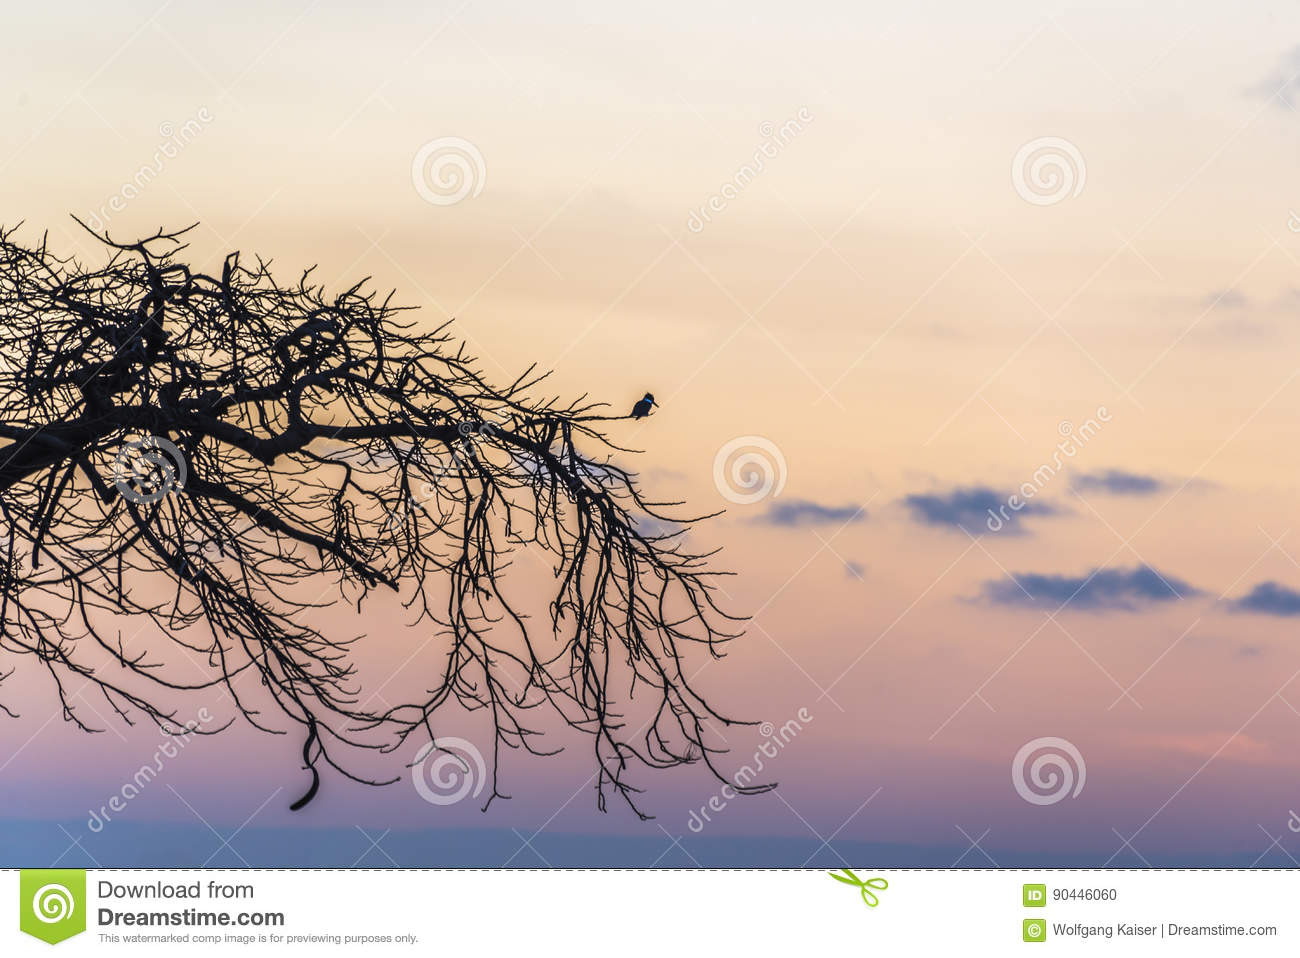 Belted Kingfisher - Megaceryle alcyon at sunset in La Boca, Cuba